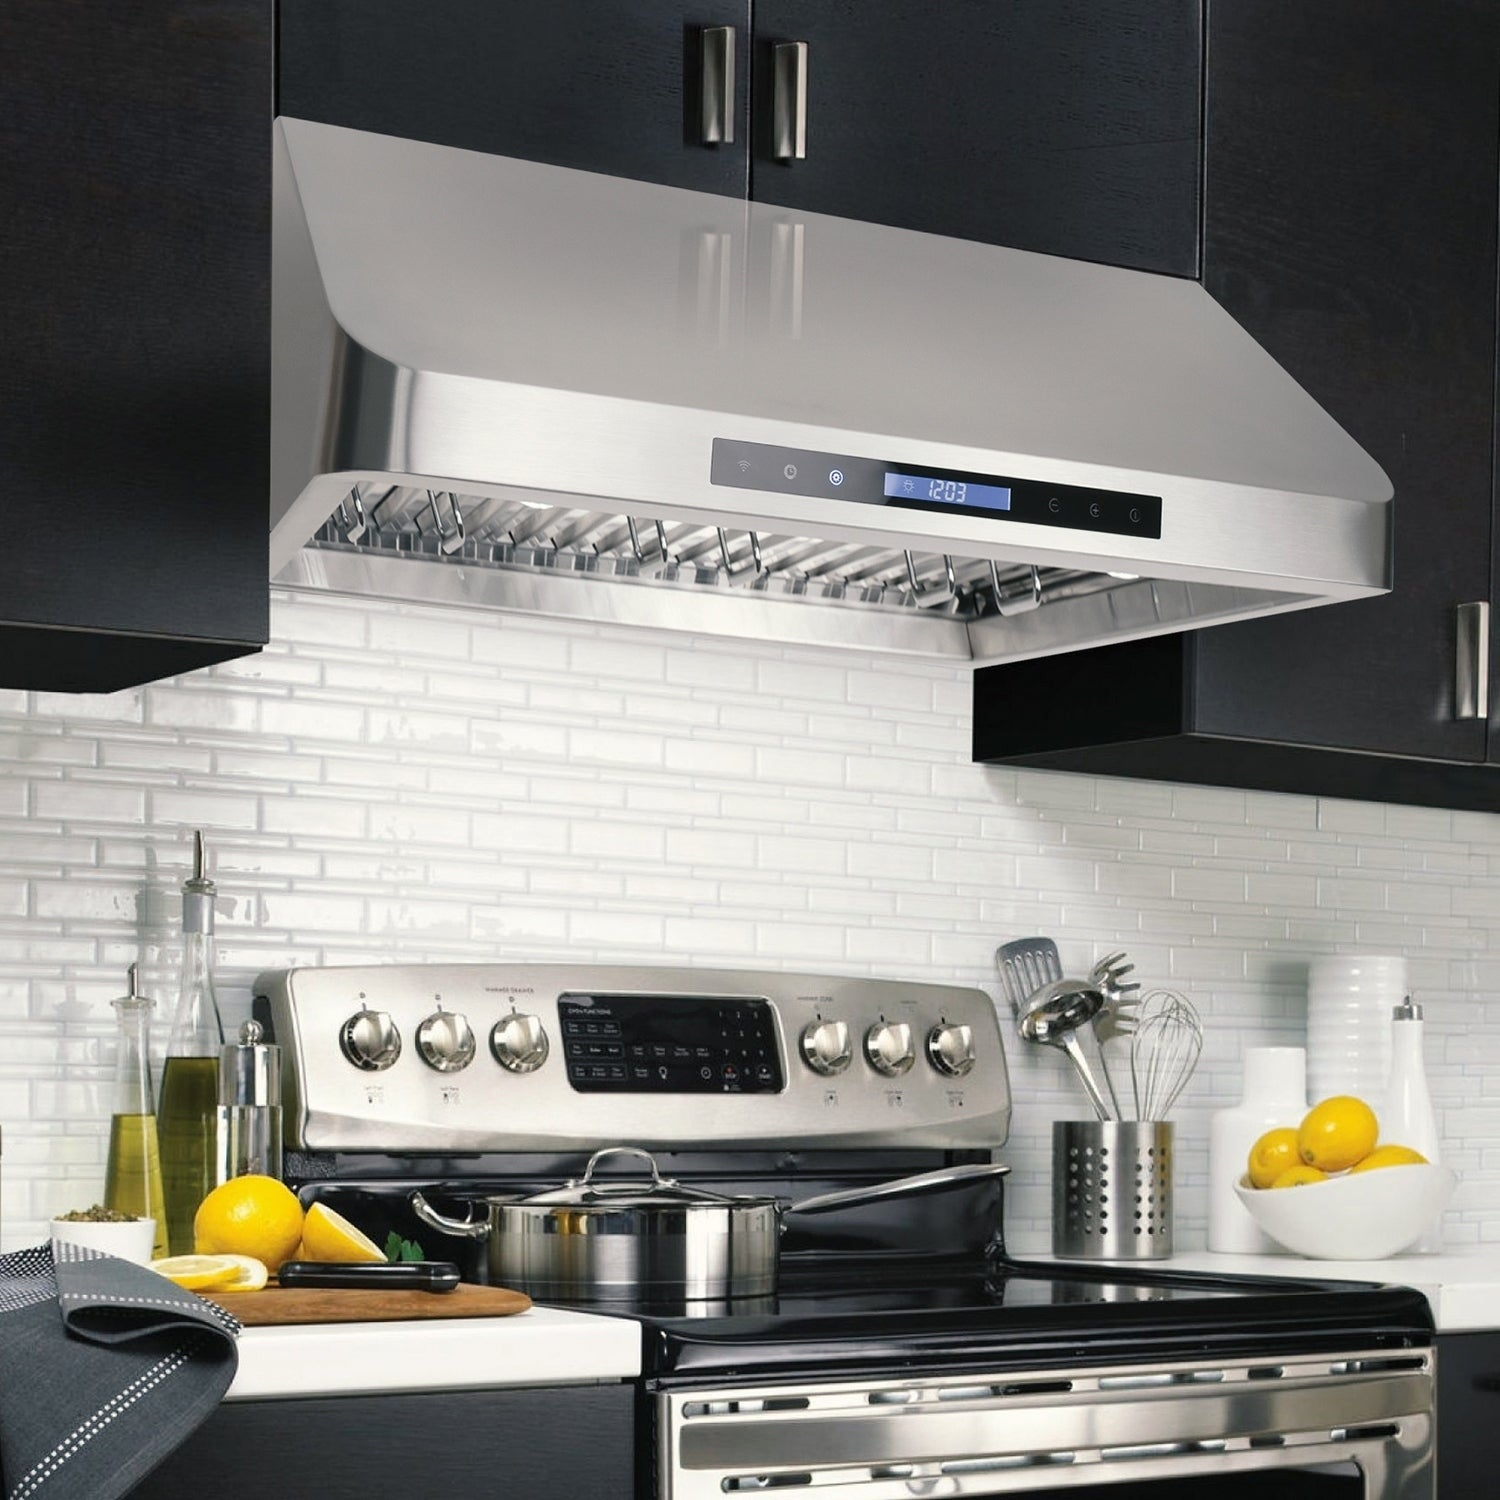 Cosmo 30-inch Range Hood 900 CFM Ducted Under Cabinet Stainless ...